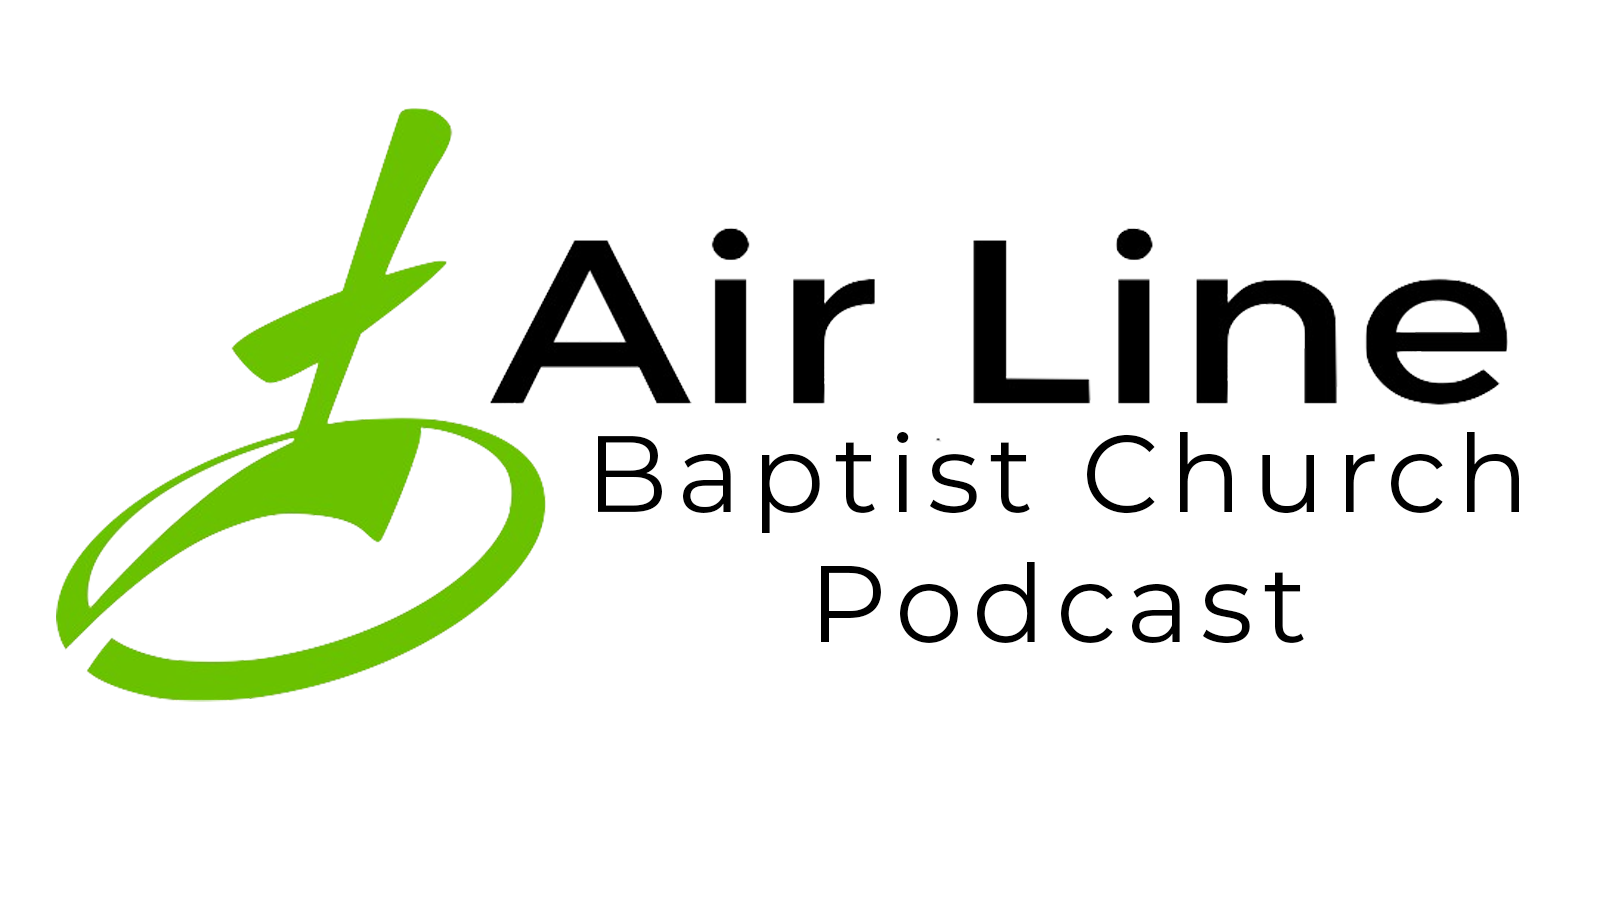 Airline Baptist Church Podcast